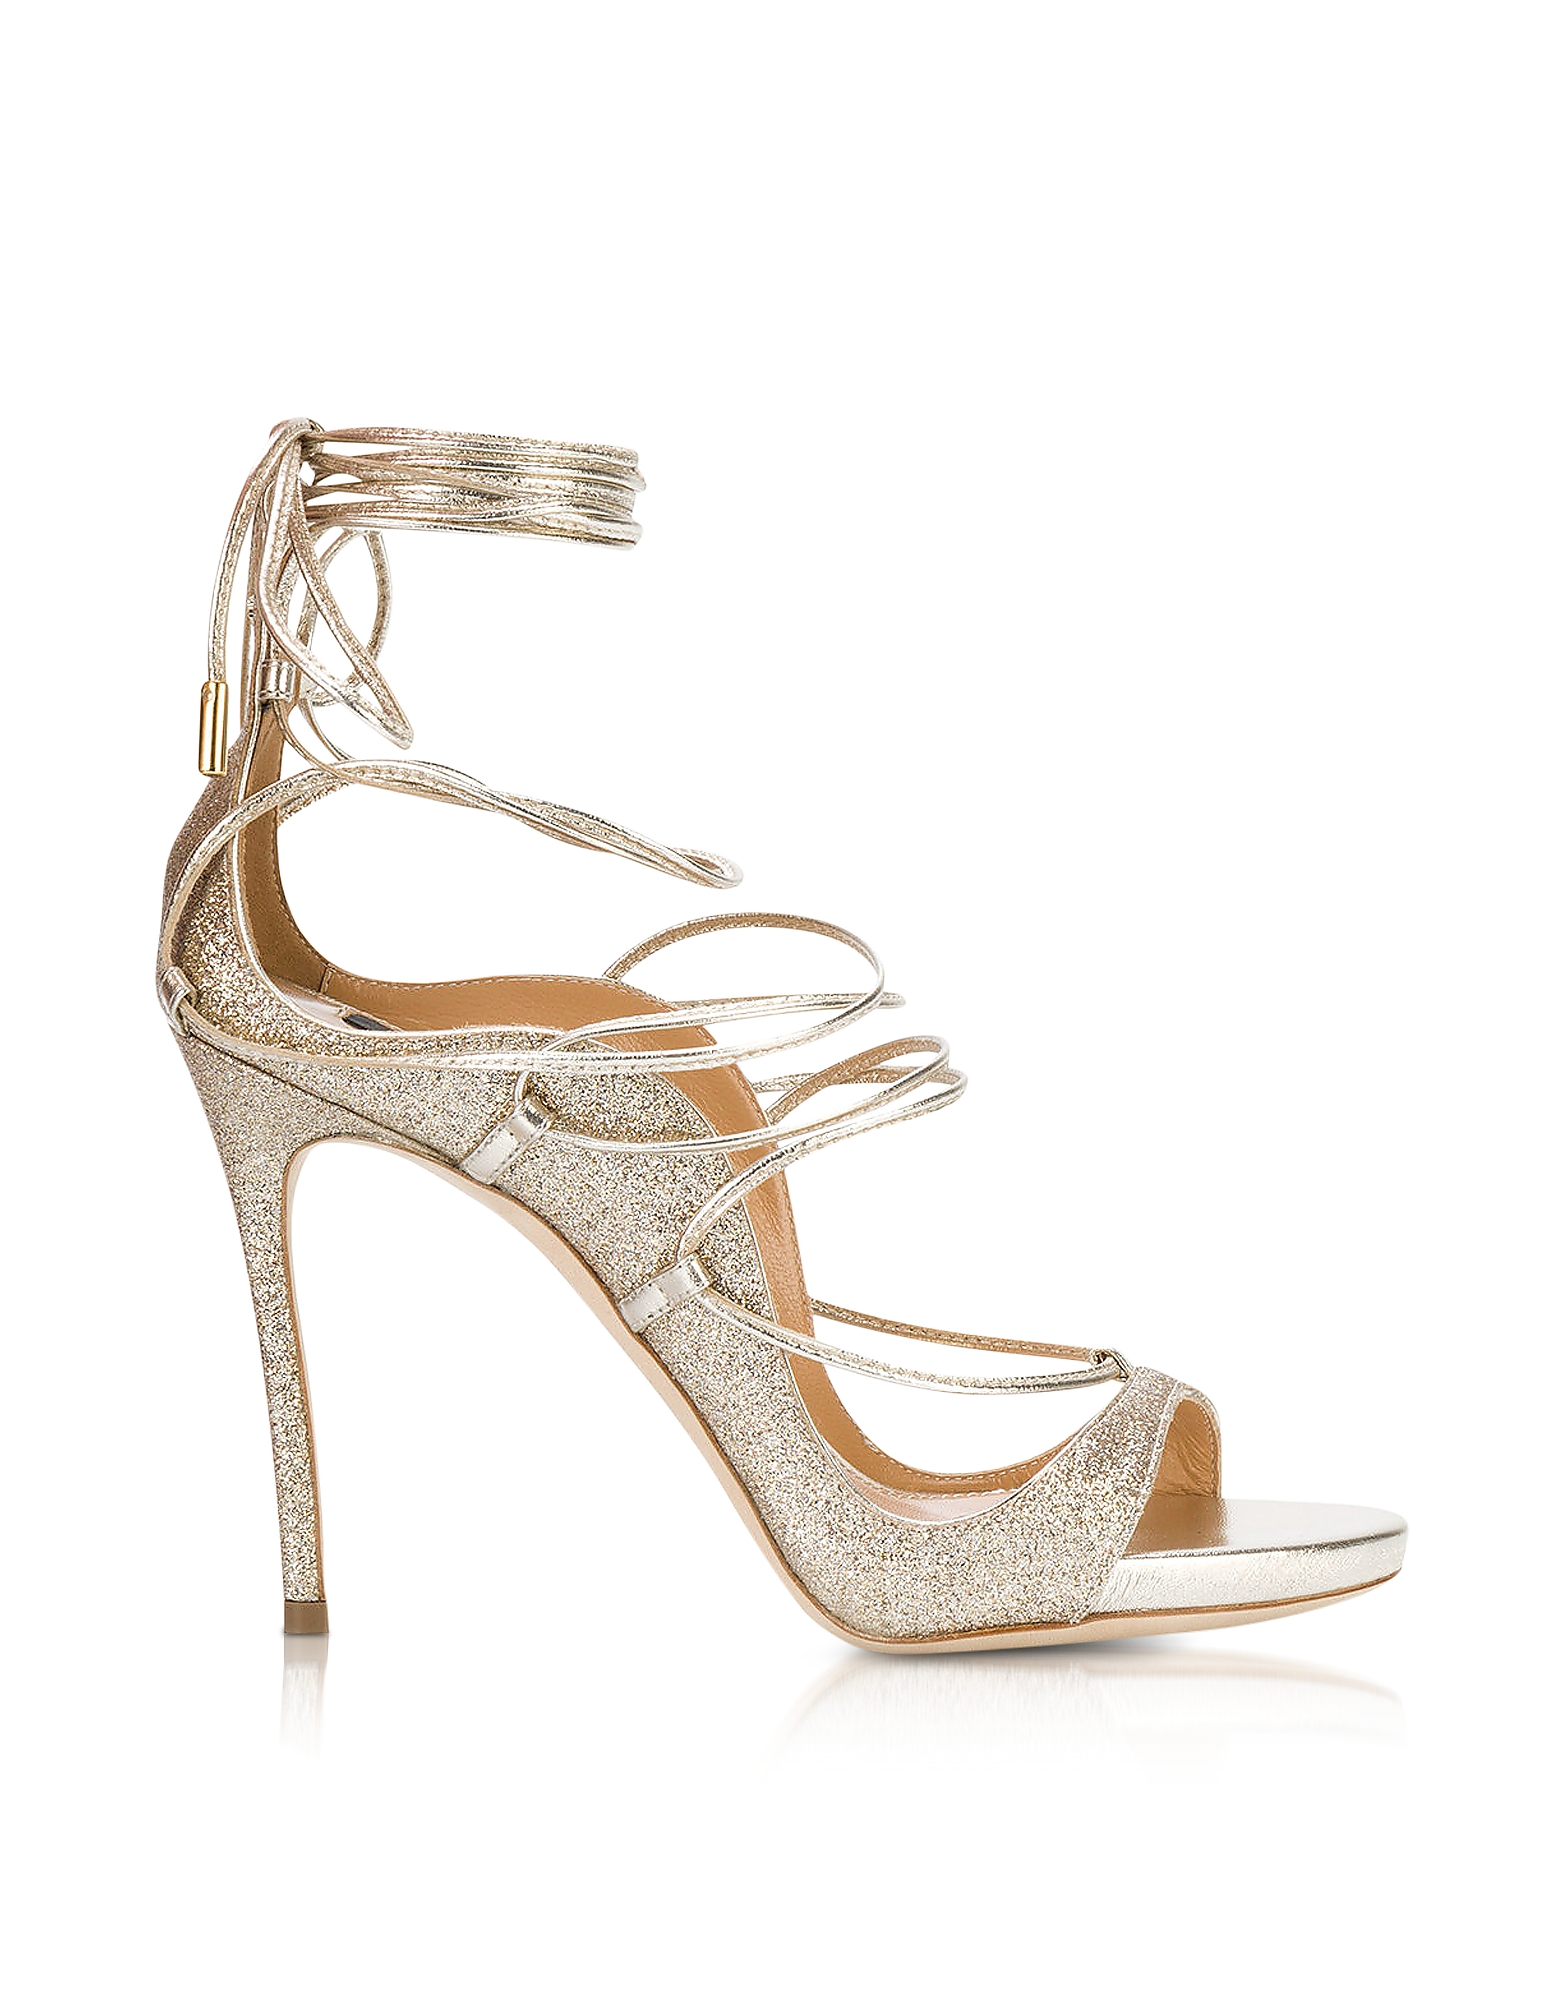 DSquared2 Shoes, Golden Glitter High Heel Sandals